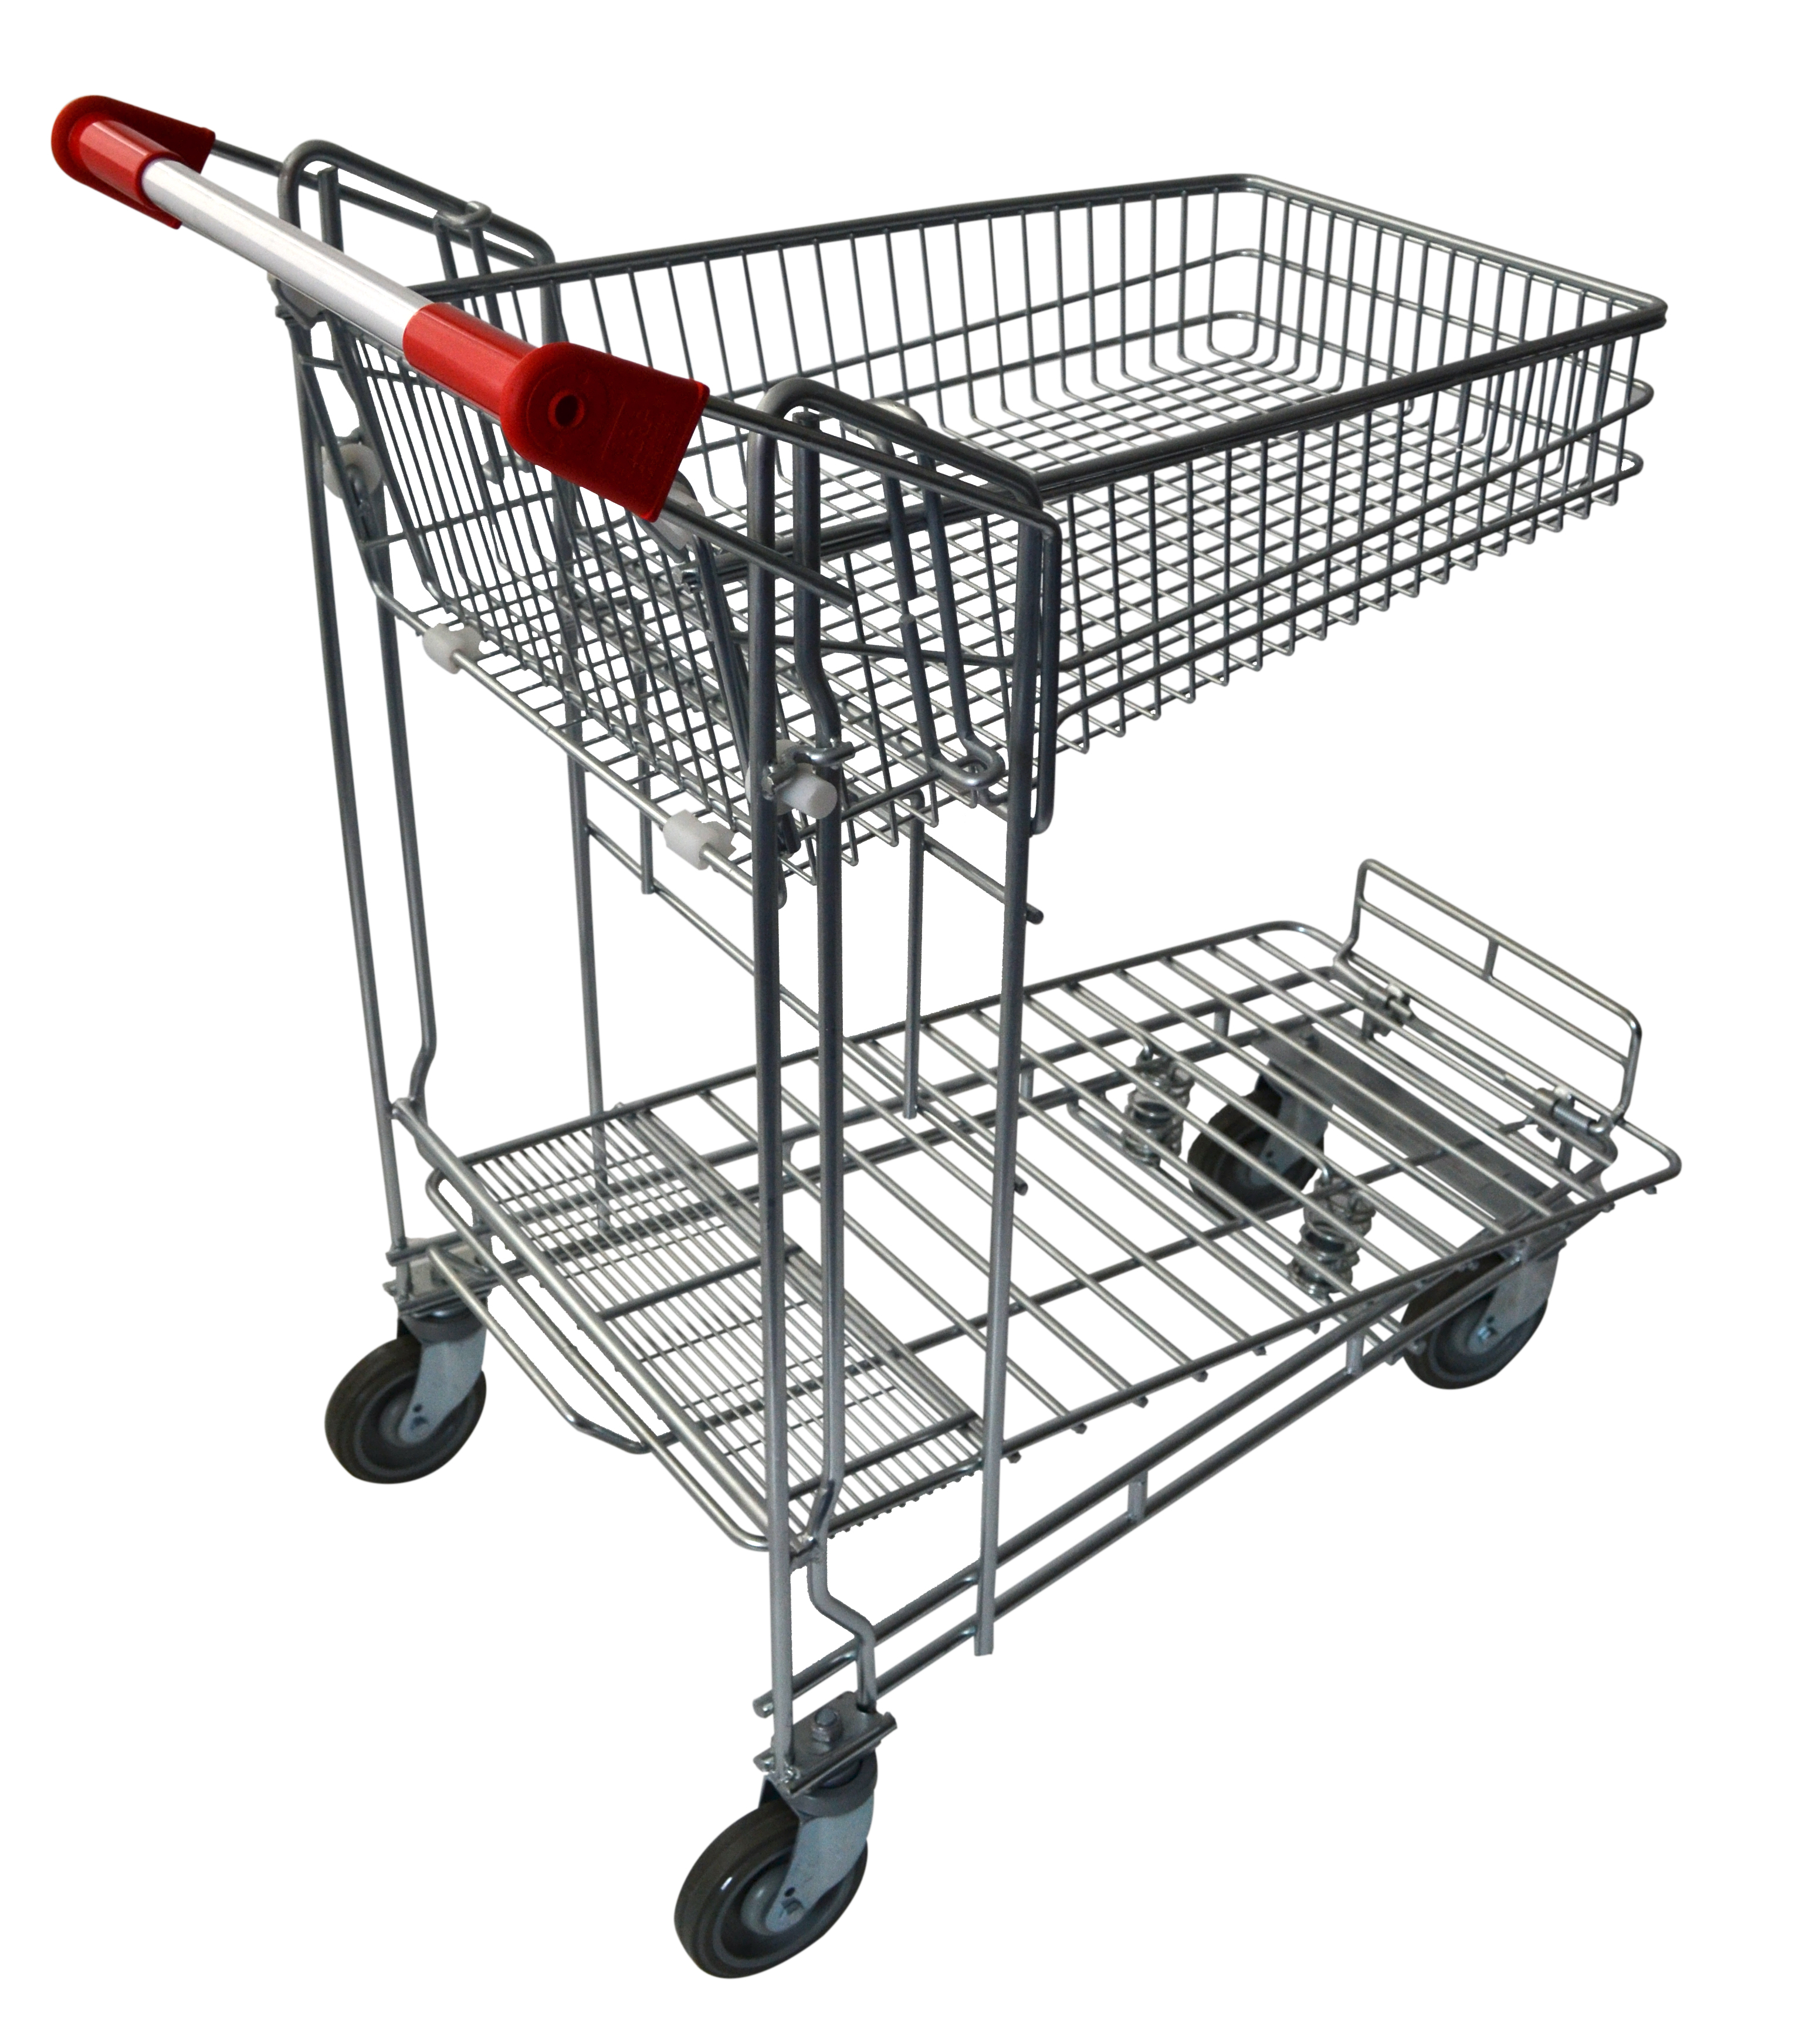 Check out this two tier hardware & liquor shopping trolleys which are capable of transporting small & large bulky items. It comes with 2 x fixed & 2 x swivel 125mm TPR castors. It features a foldable top basket with 45 litre capacity. Available now!